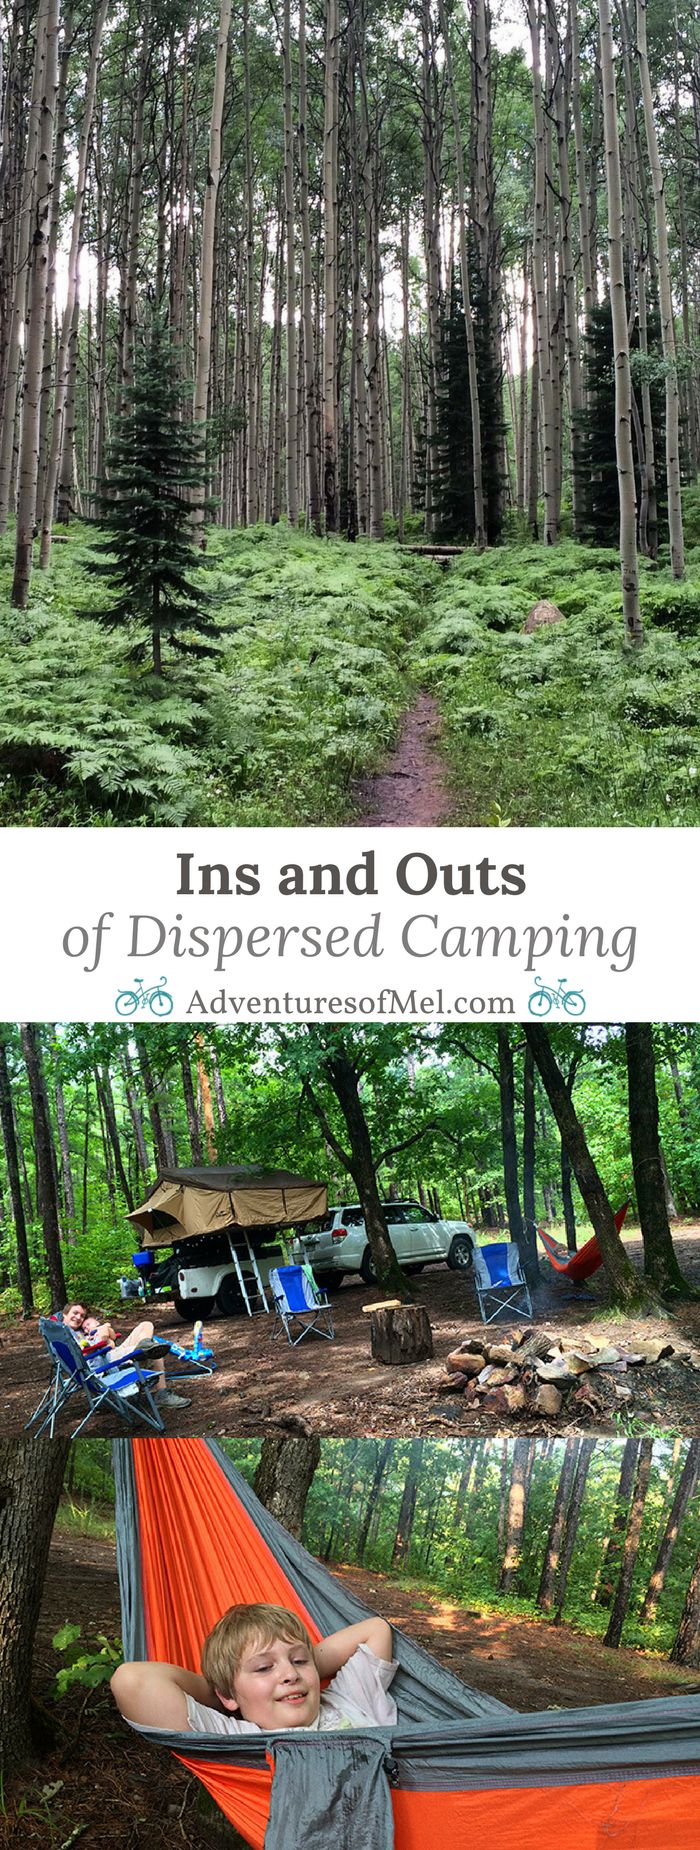 What dispersed camping really is, where to camp, rules for dispersed camping, tips and camping supplies we recommend for family camping in the wild, and why we love it more than any other type of camping, so much so that we can't imagine any other type of camping.